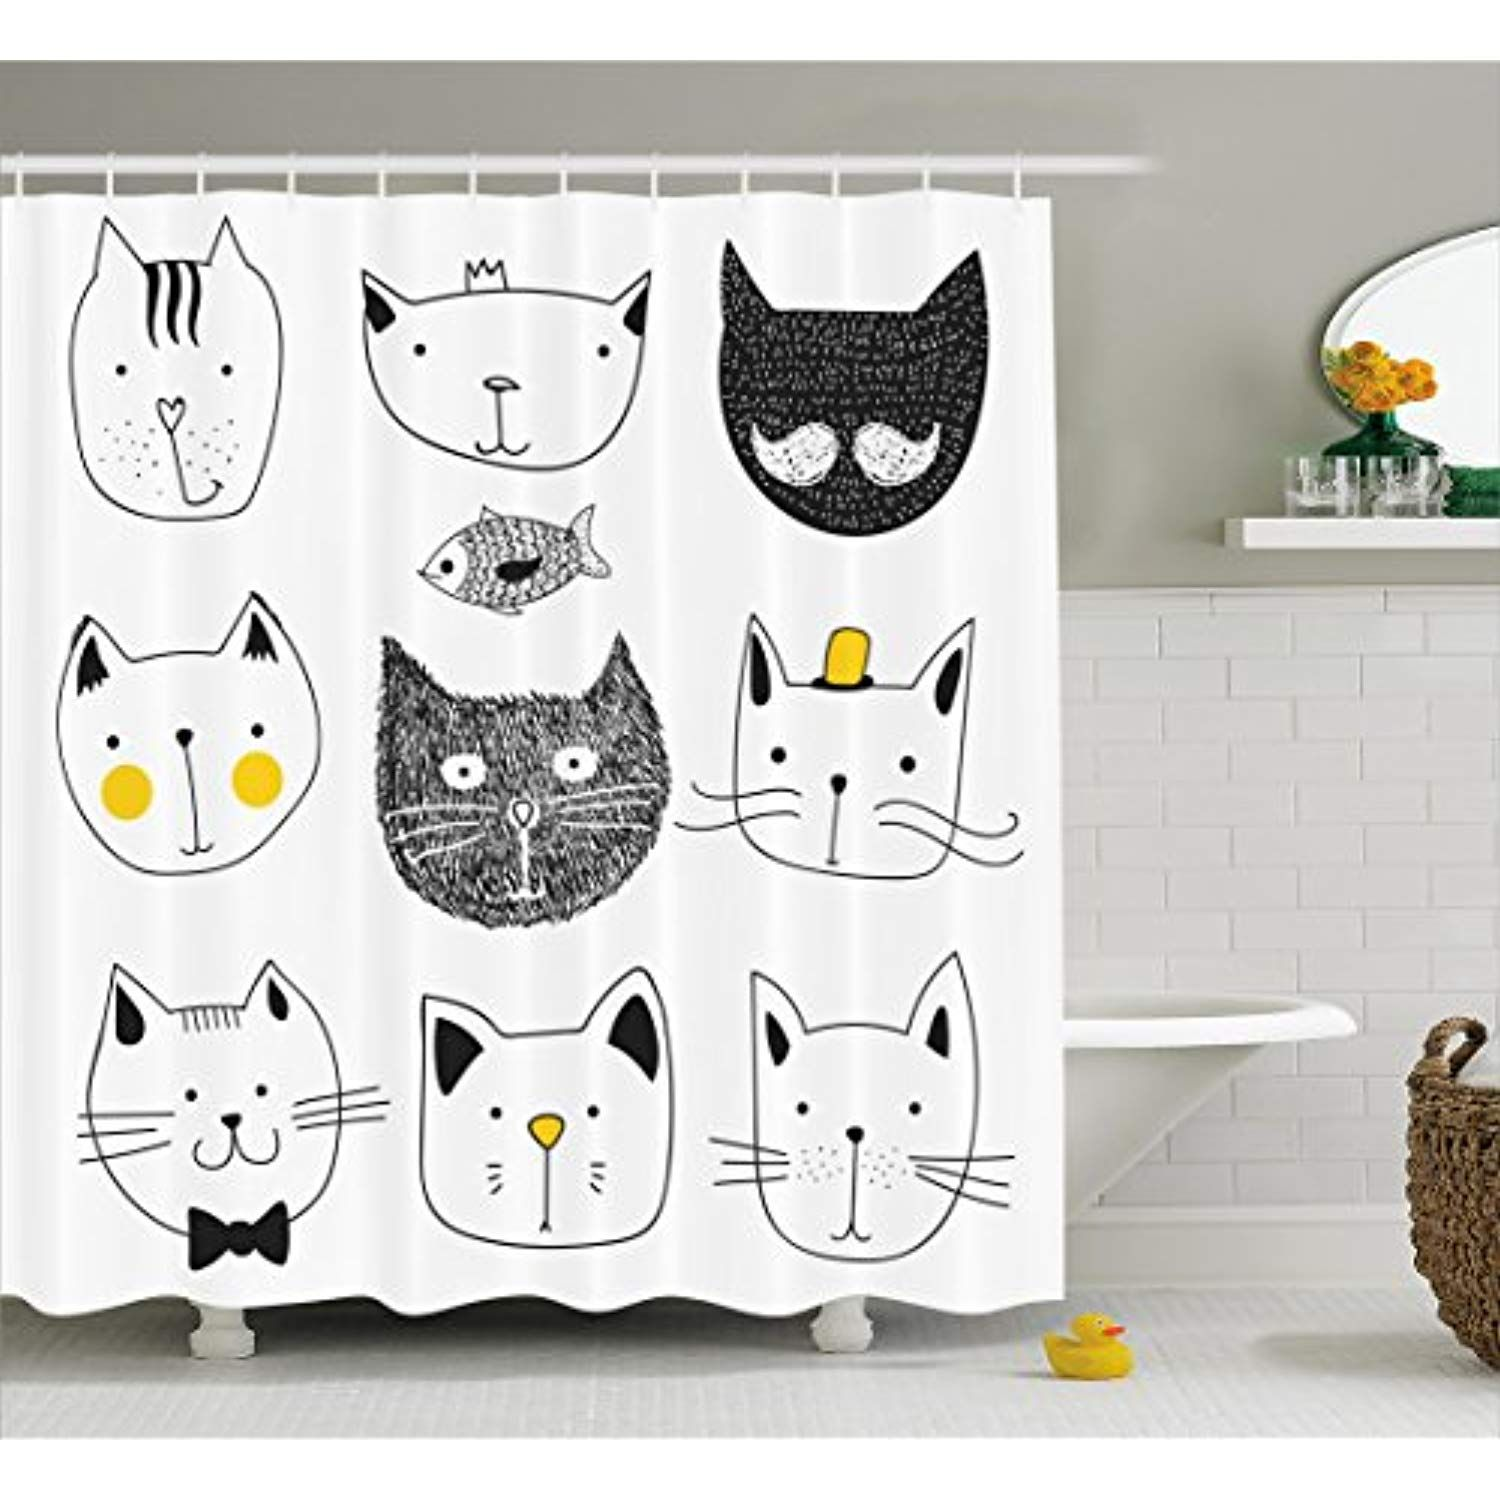 Ambesonne Cat Shower Curtain Stylish Cats With Moustache Bow Tie Hat Crown Fluffy And Fish Humor Faces Cat Shower Curtain Shower Curtain Hooks Bathroom Decor